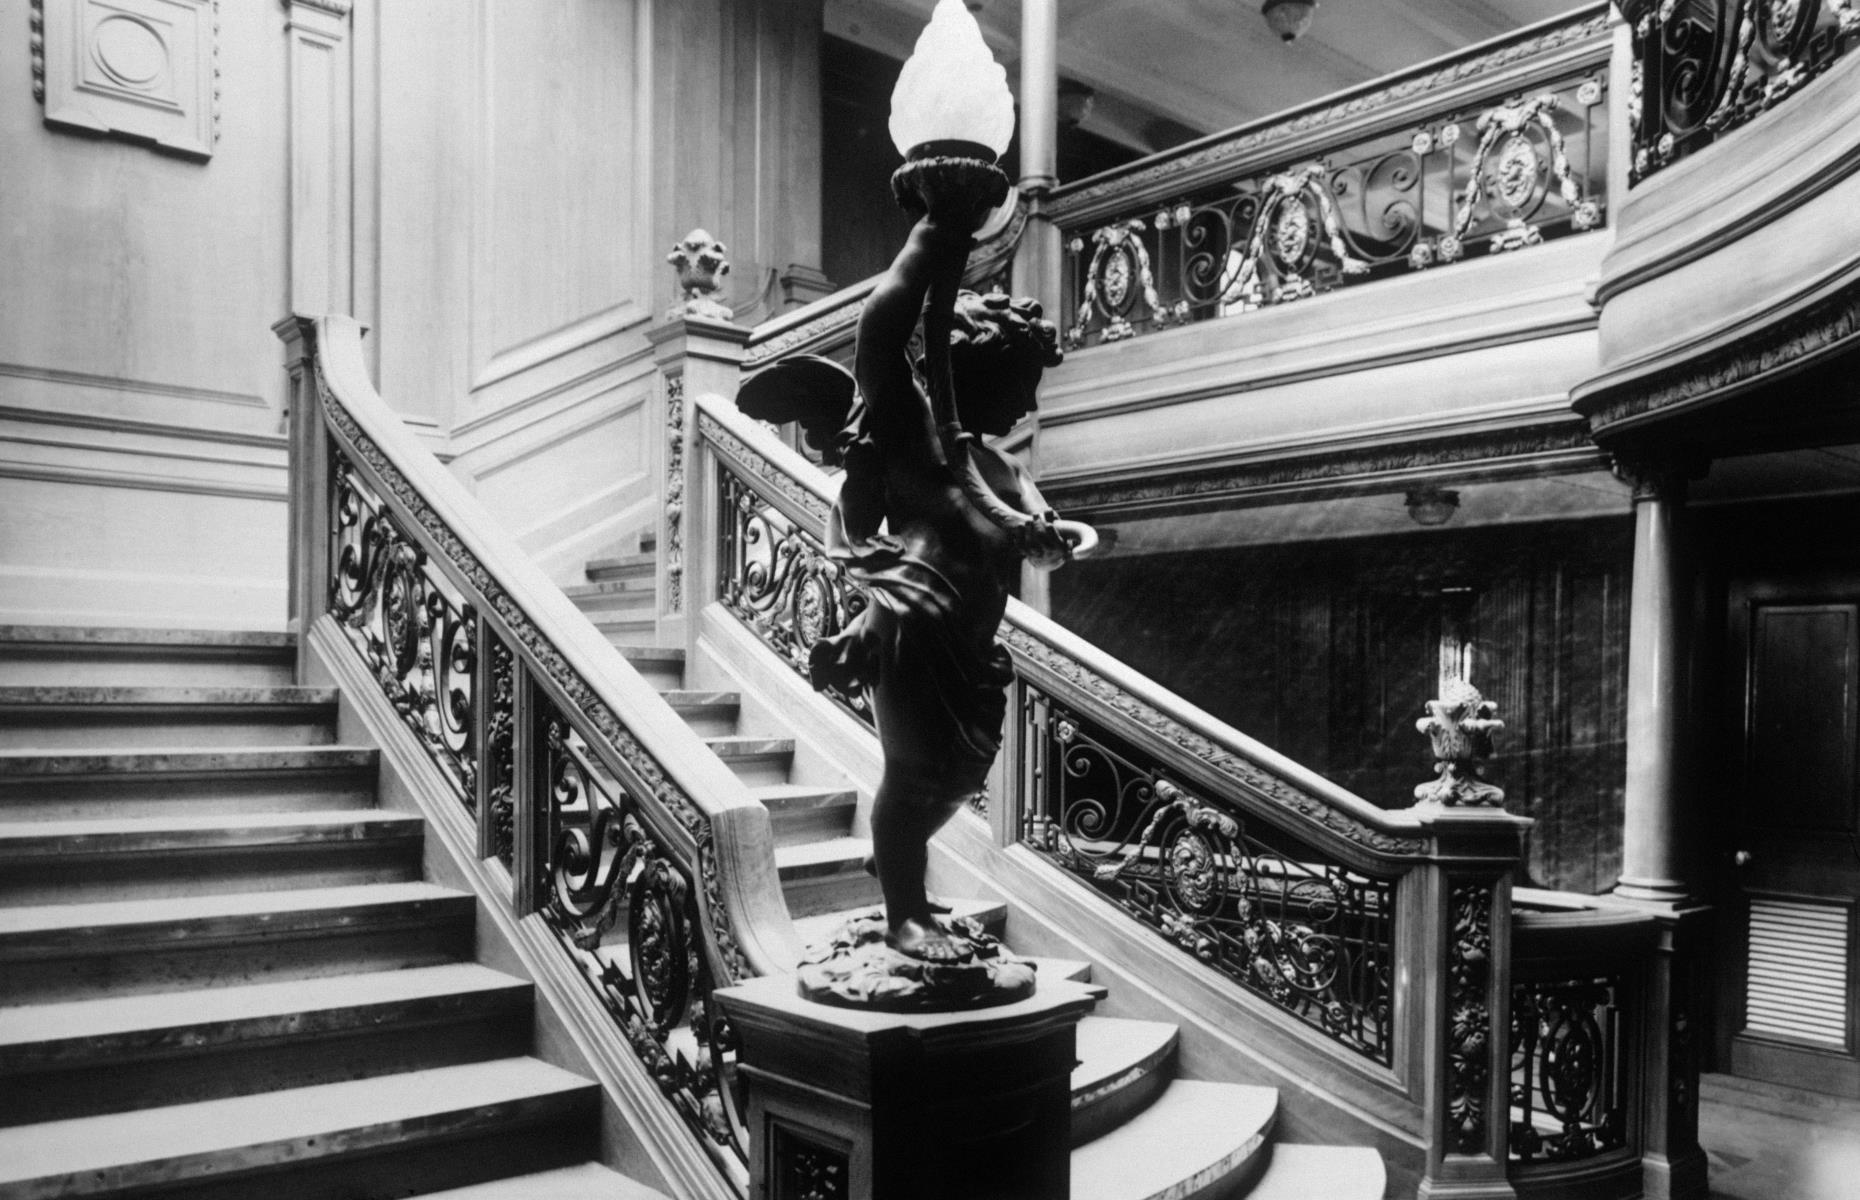 Slide 8 of 46: While at the time RMS Titanic was the largest ship afloat, the ship's appeal wasn't just her size – once onboard passengers would have been staggered by the ship's jaw-dropping interiors. The grand staircase in first class (pictured) was one of the most lavish at sea and featured a wrought-iron and glass-domed roof and oak paneling.